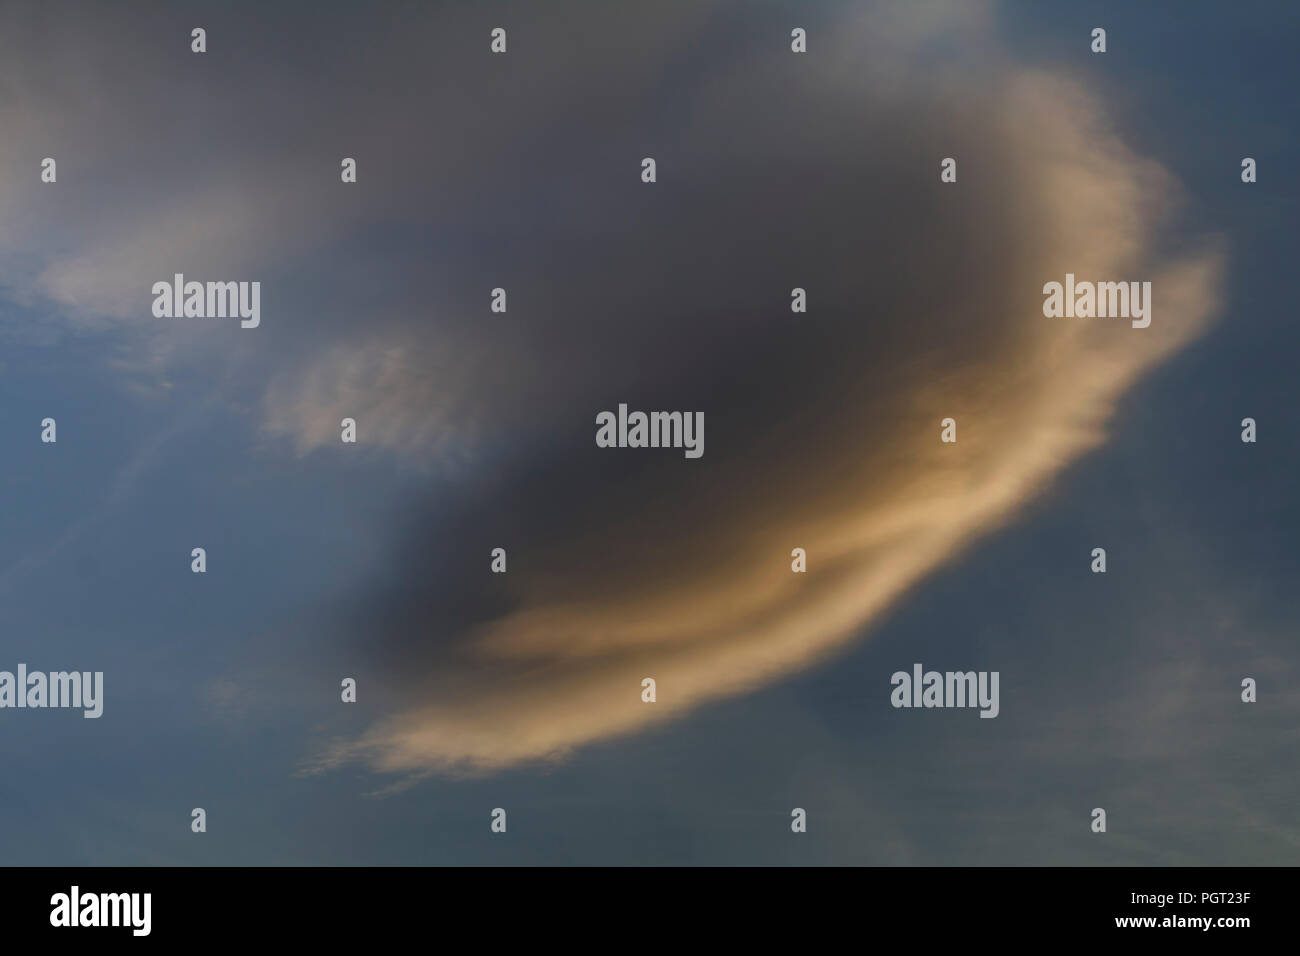 Hammer head cloud formation - Stock Image